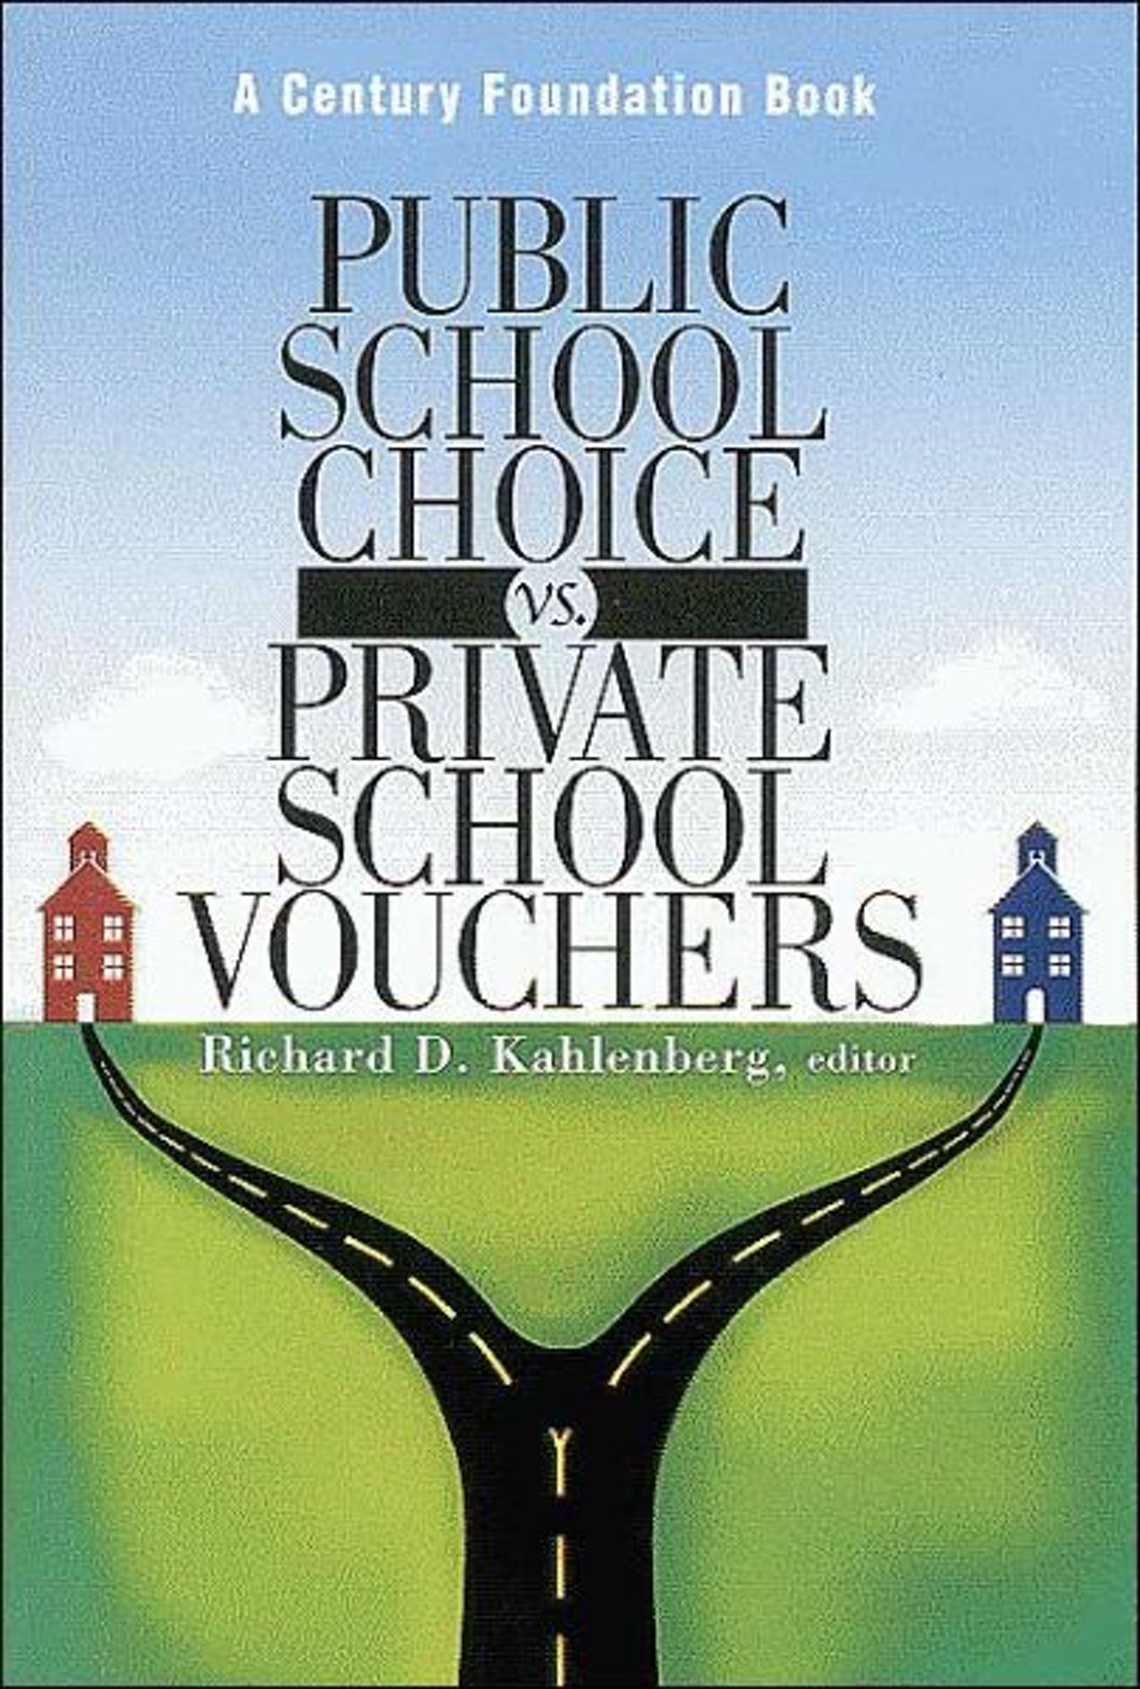 an analysis of the topic of the school vouchers as the wrong choice One of the most contentious budget debates this year may be over something the president did not include in his 2012 spending plan — school vouchers.